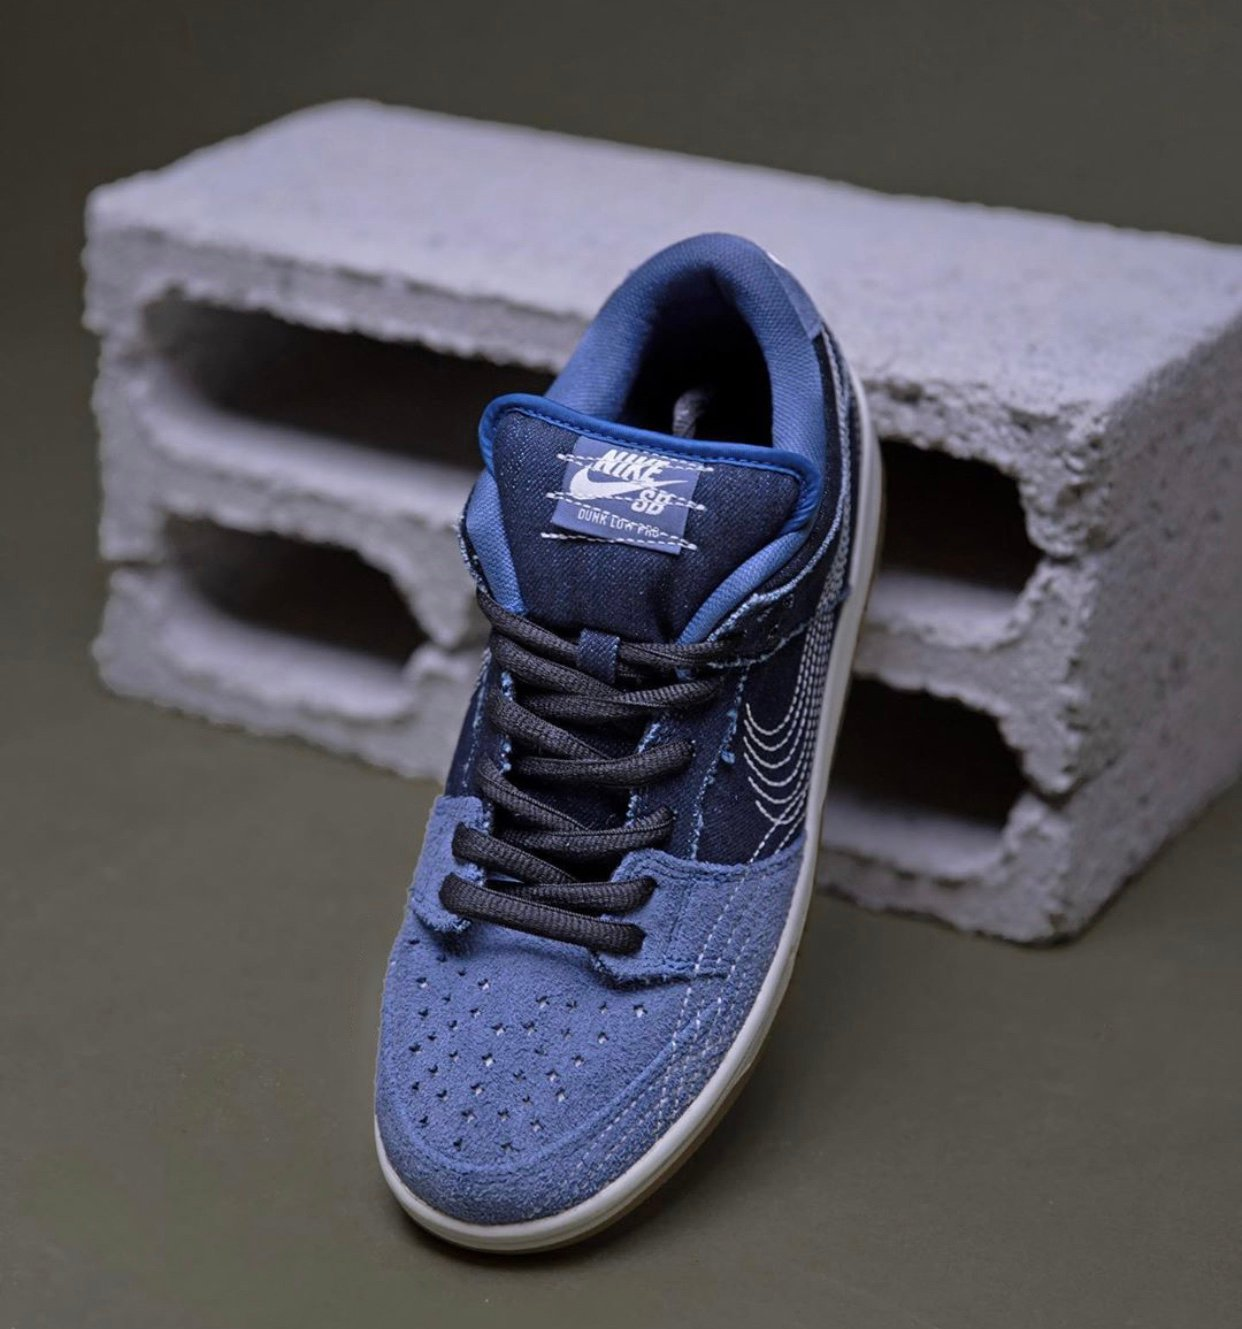 Nike SB Dunk Low Denim Gum CV0316-400 Release Date